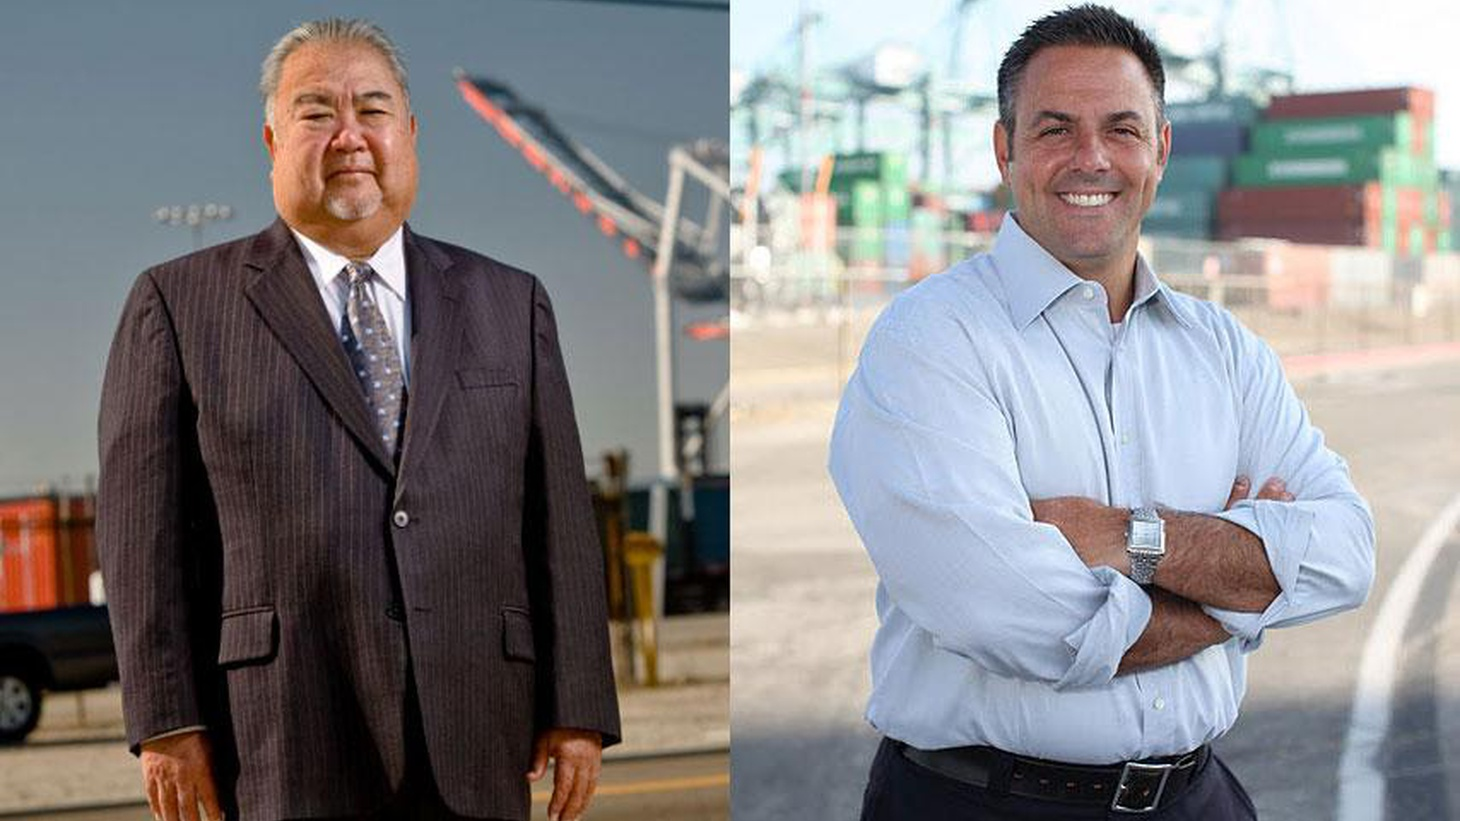 On Tuesday, voters in Los Angeles City Council District 15 will vote to replace Janice Hahn. We hear a debate between runoff candidates Warren Furutani and Joe Buscaino.